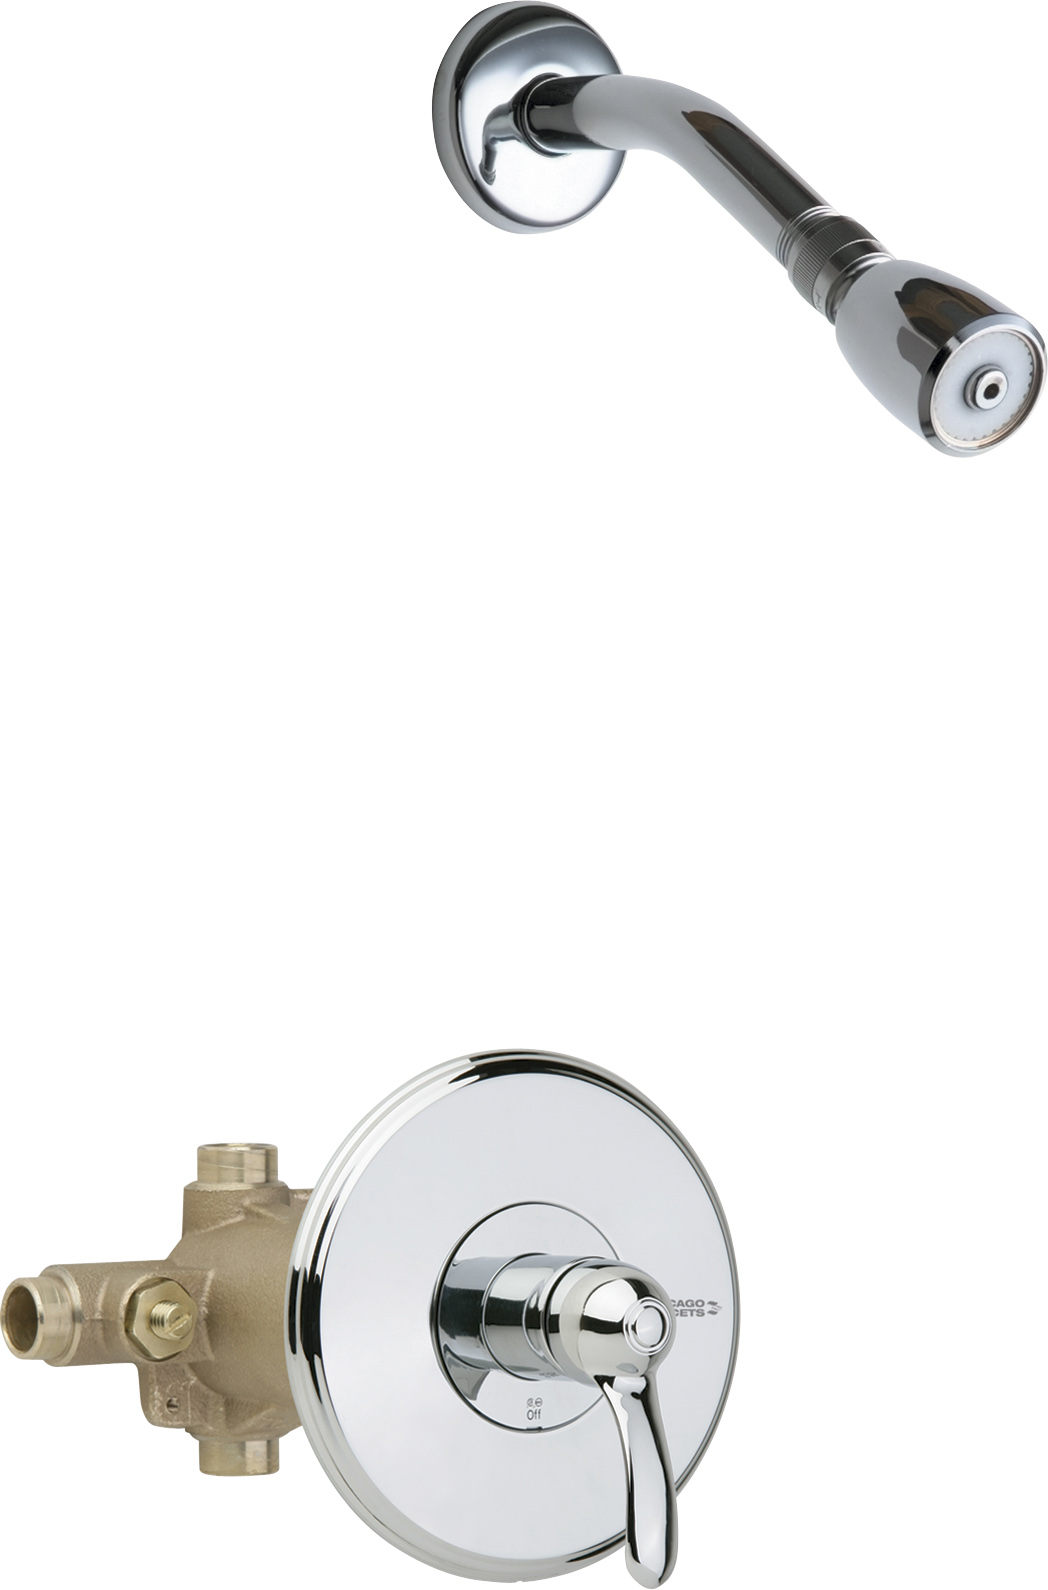 Thermostatic/pressure balancing tub and shower fitting